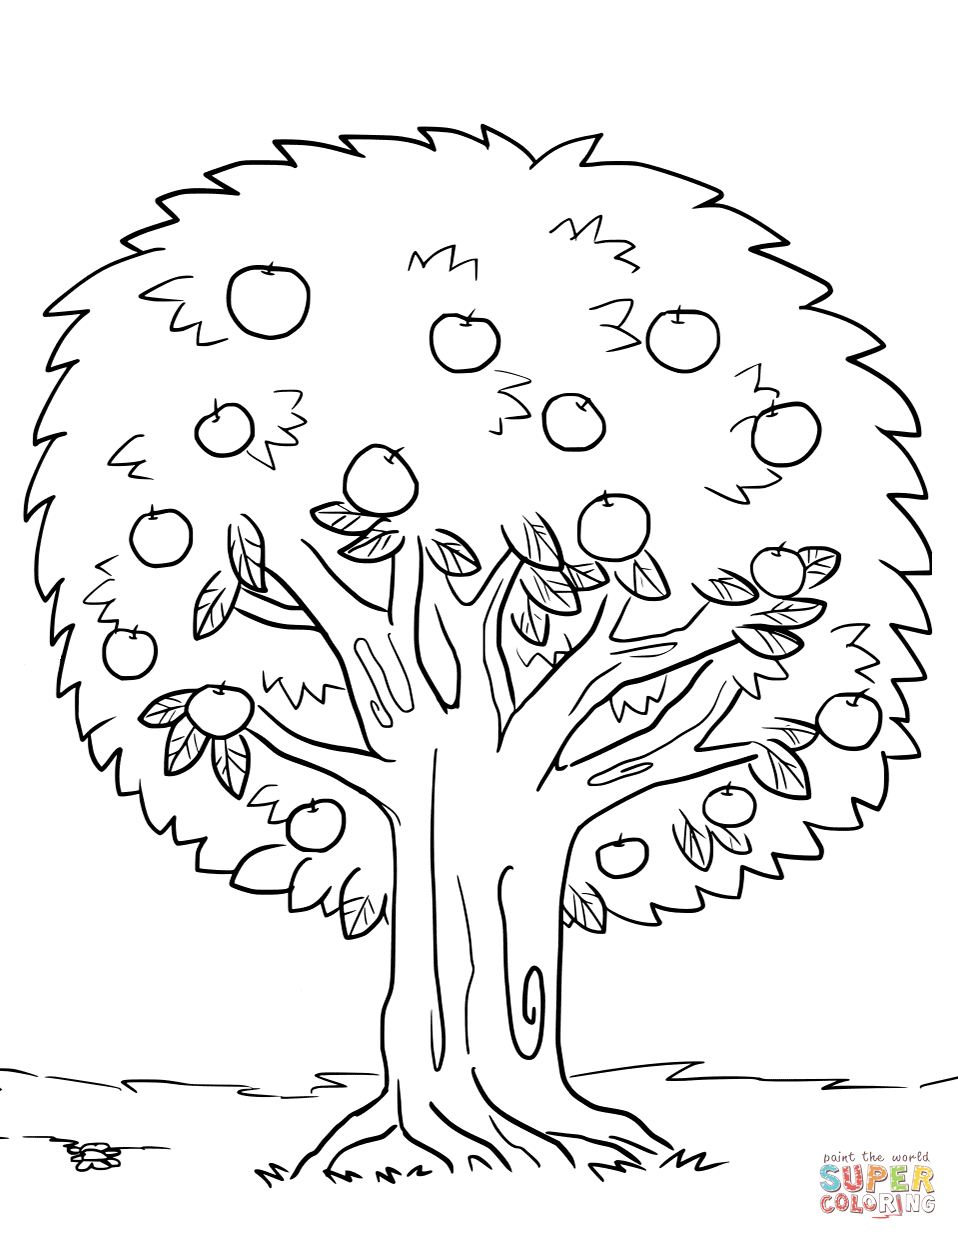 Tree Coloring Pages - Apple Tree Coloring Page Free Printable - Tree Coloring Pages Free Printable